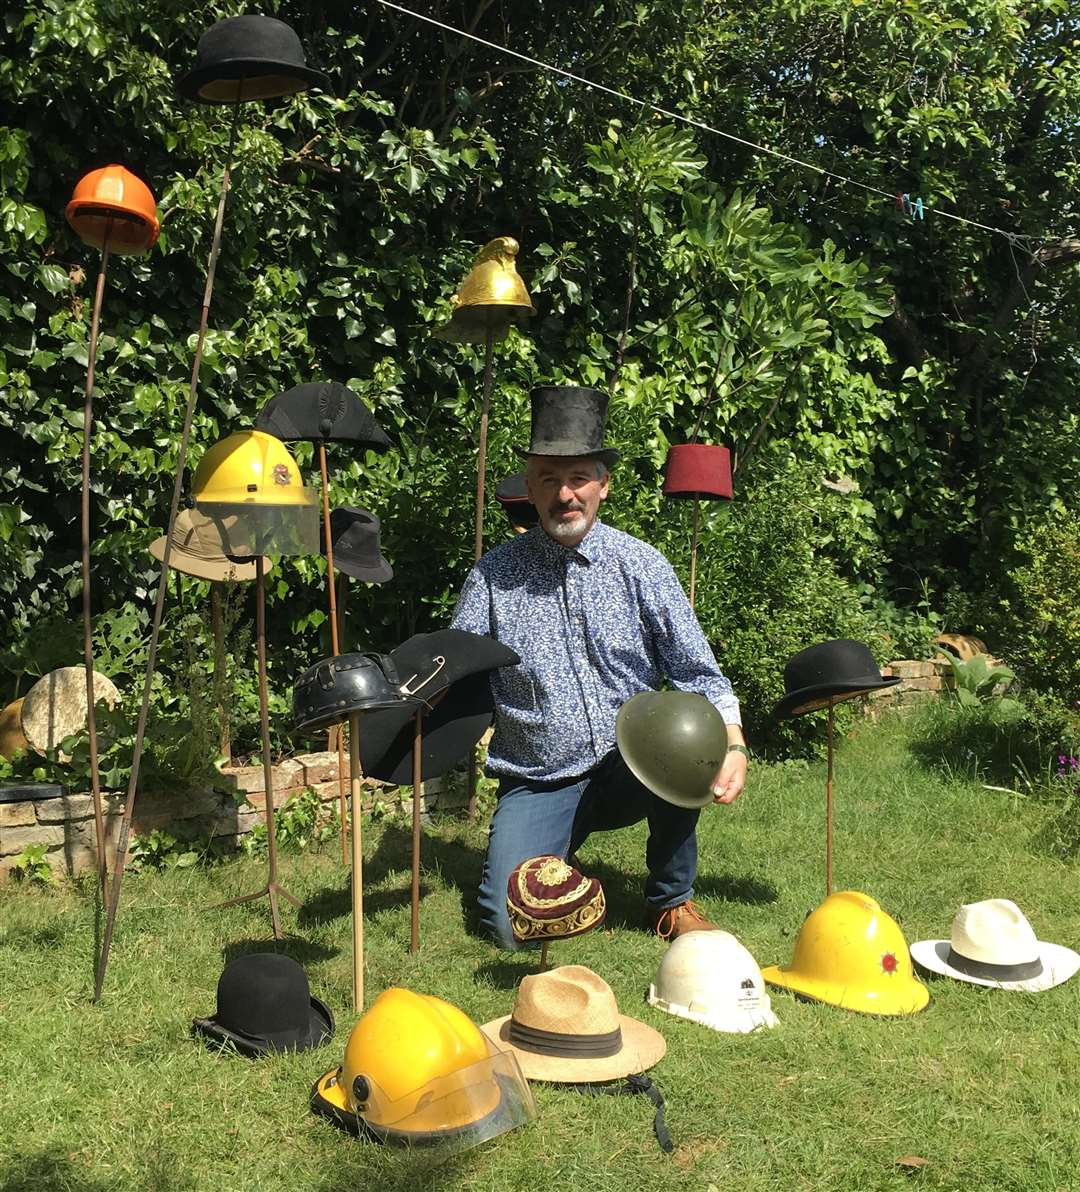 David Palmer with some of the hats. The one with a safety pin is said to have been worn by Spike Milligan (2105975)